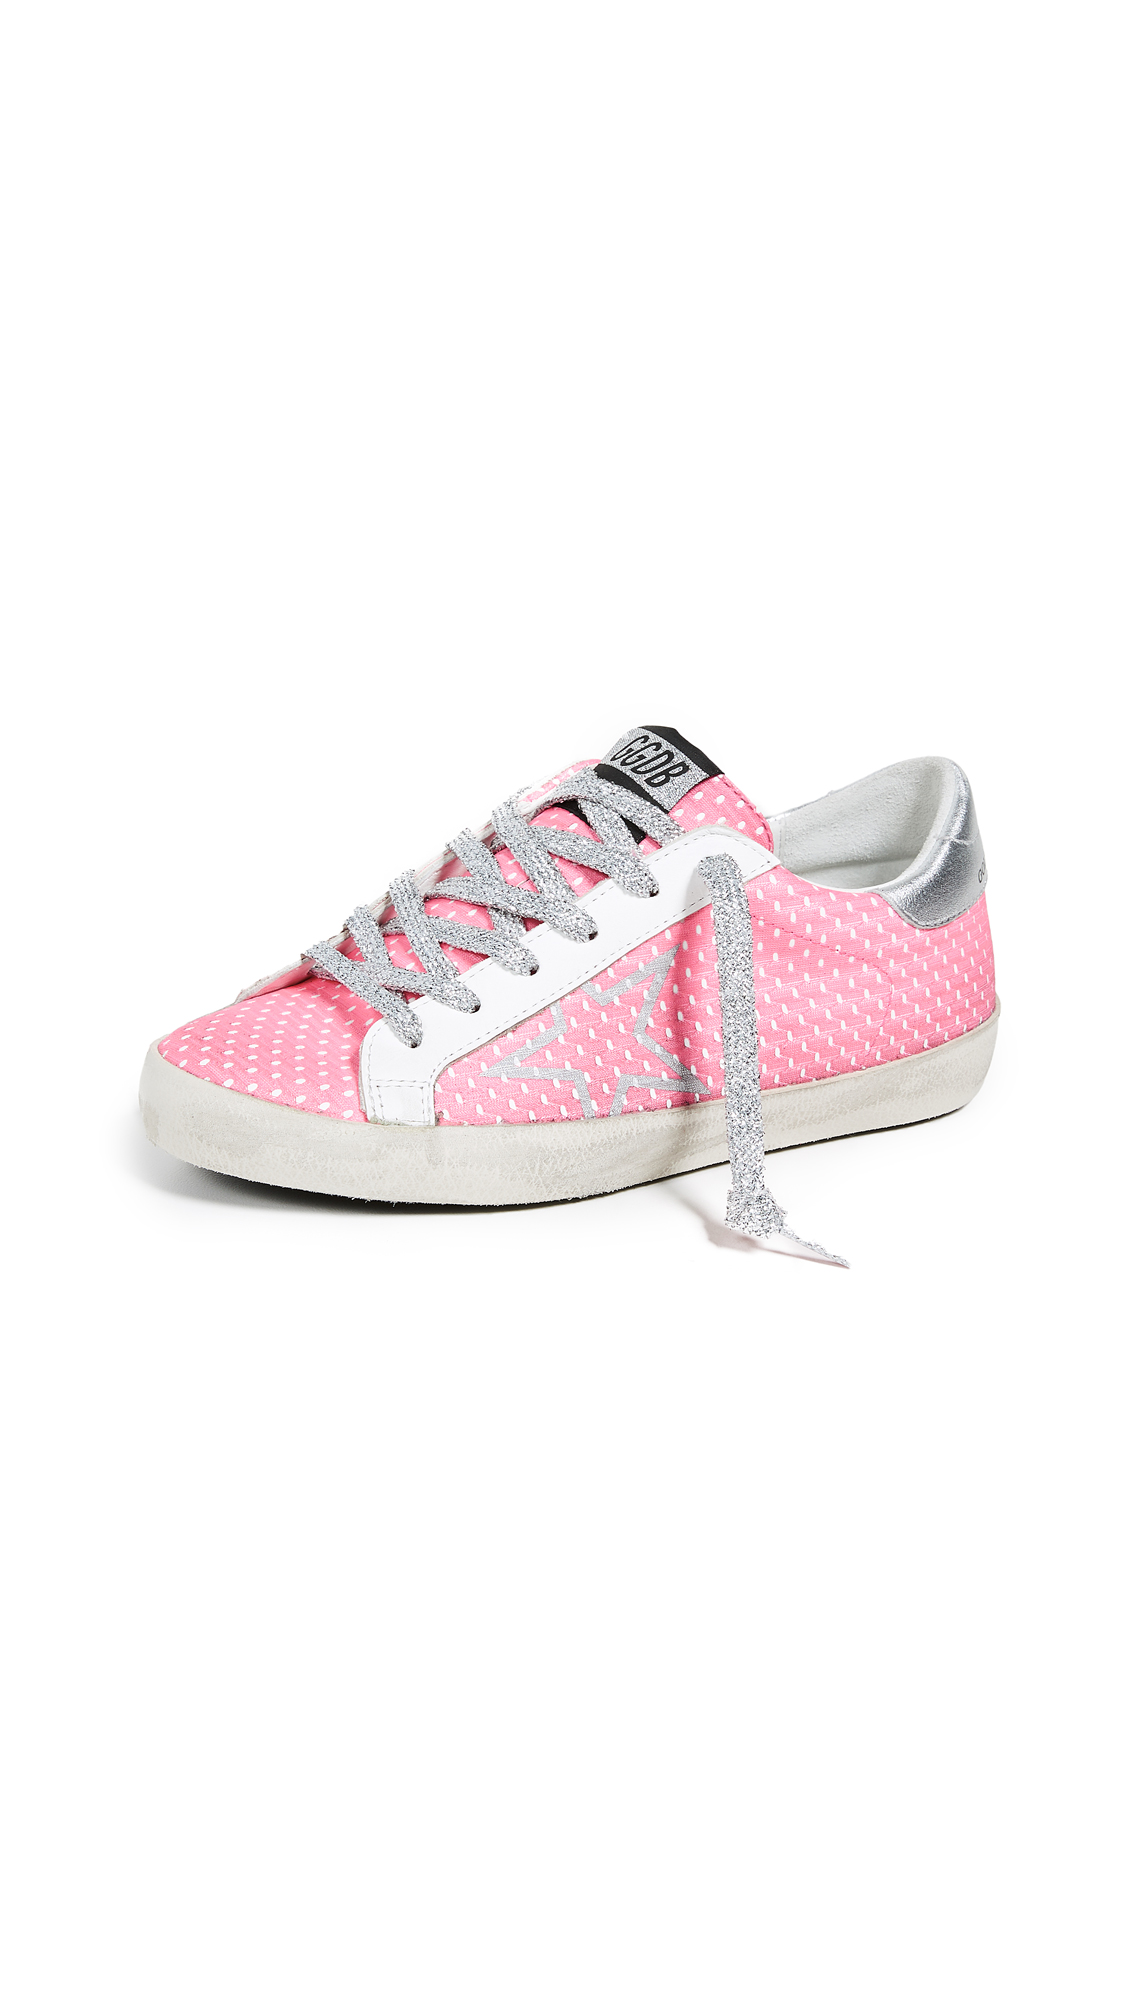 Golden Goose Superstar Sneakers - Pink/Silver